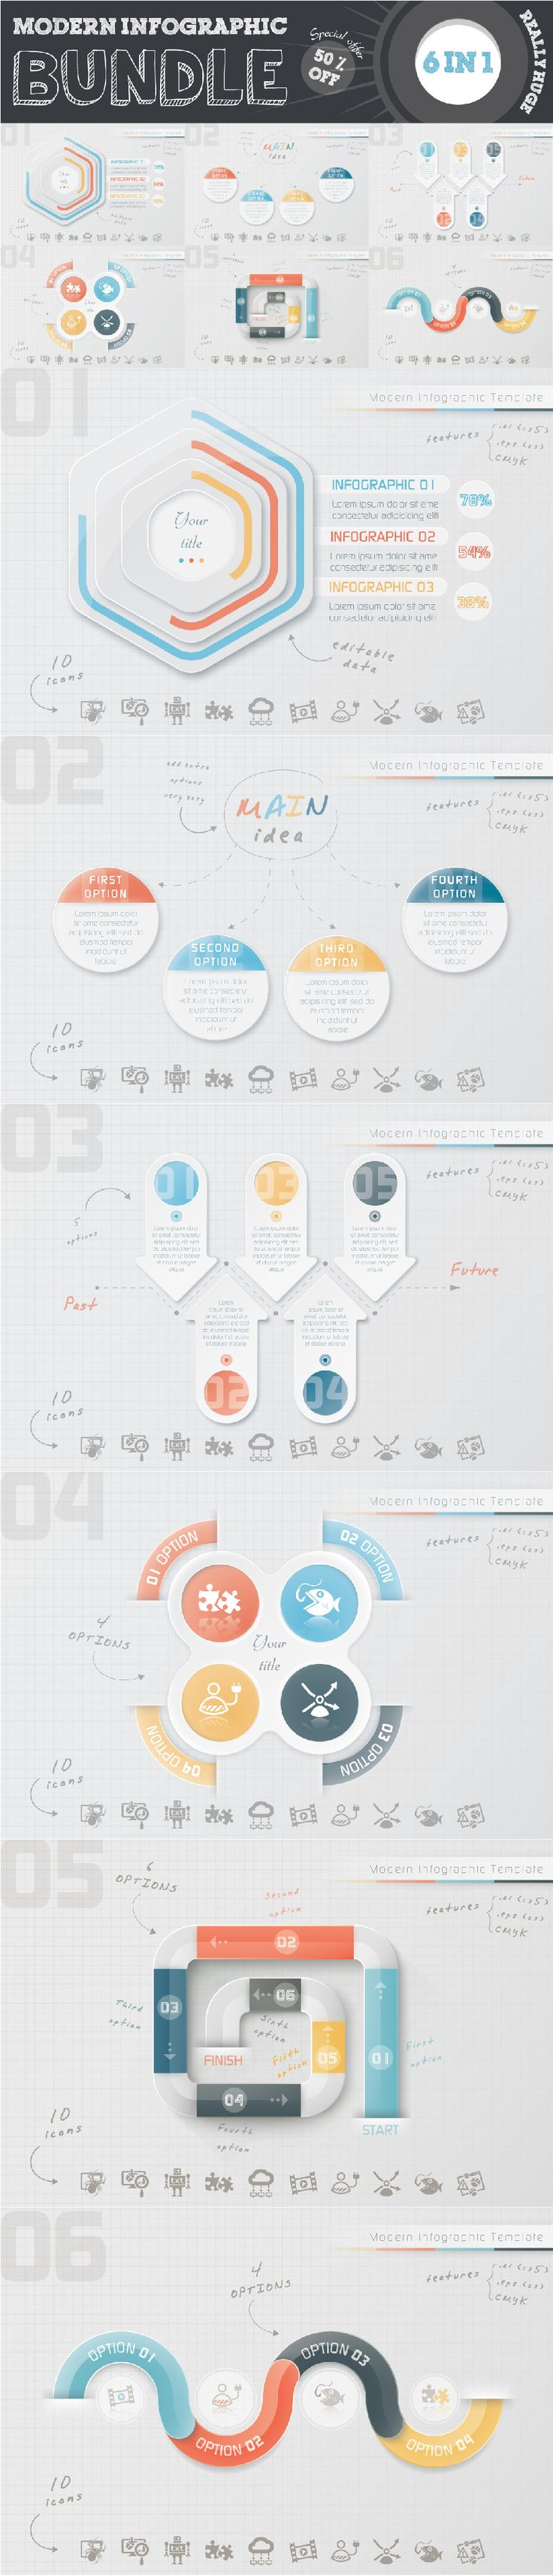 Check out #Infographic Infographic Bundle (vol.1) http://infographicparadise.com/infographic/93-Infographic-Bundle-%28vol.1%29 on http://infographicparadise.com/